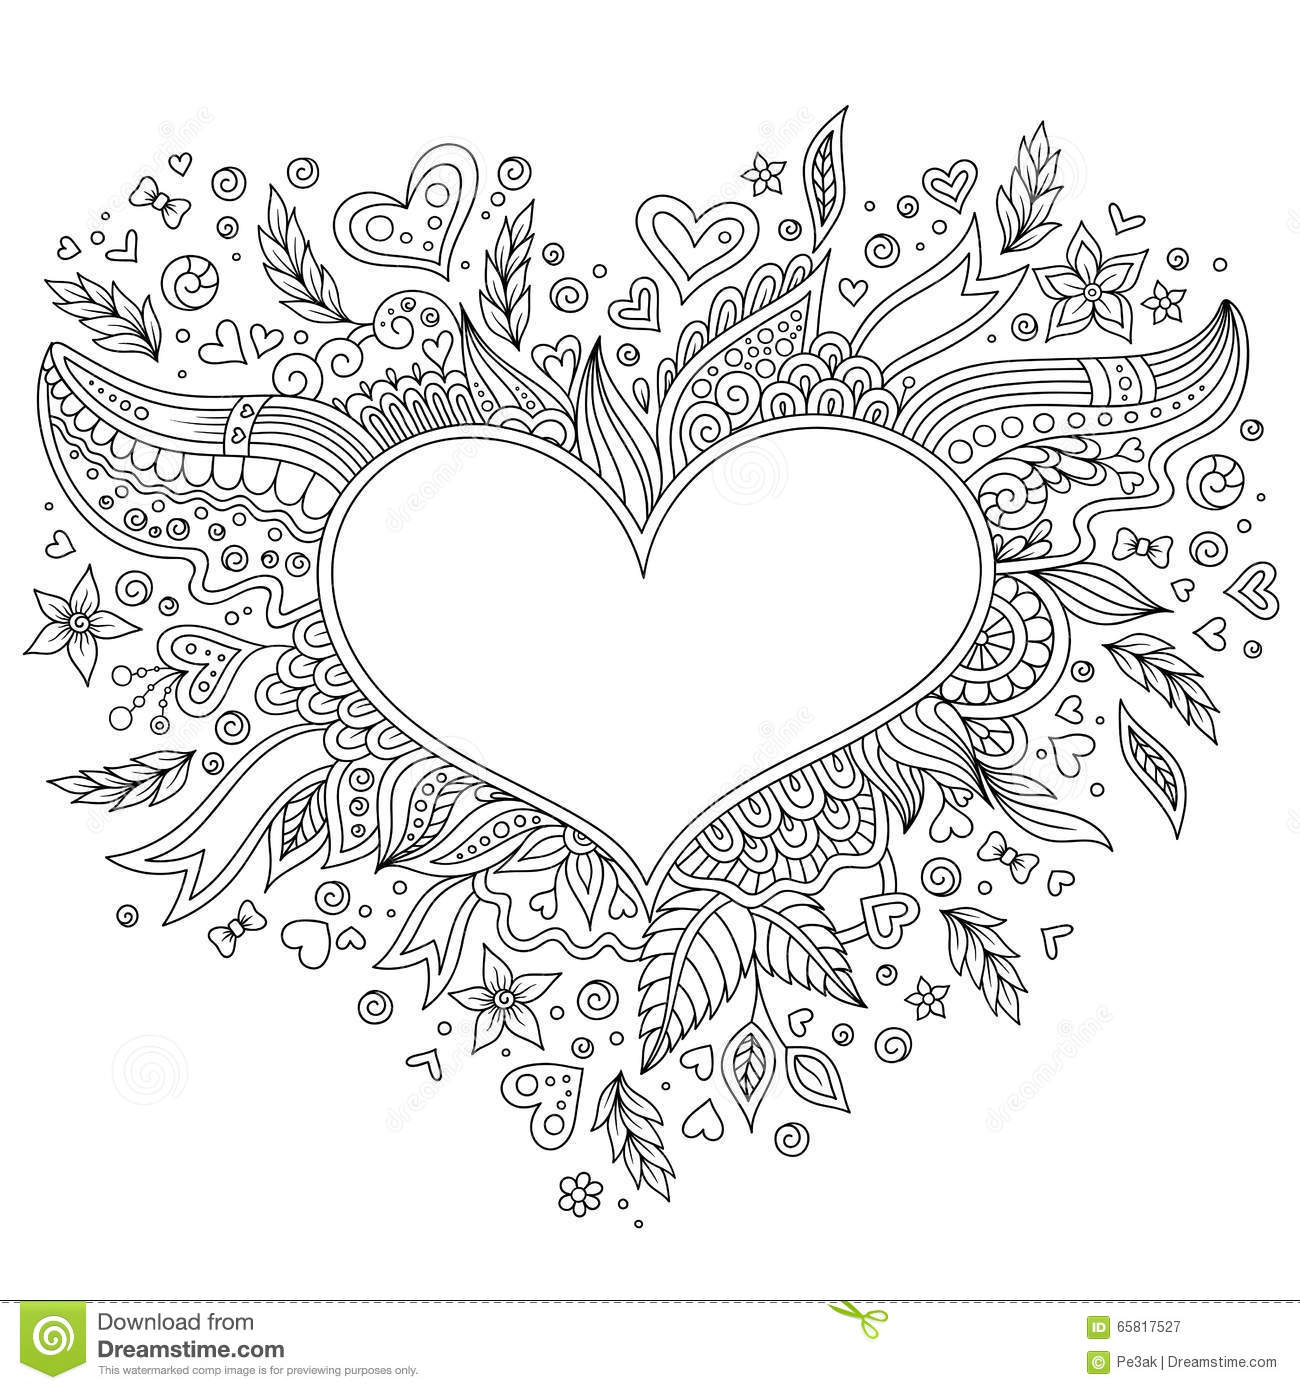 flower and hearts coloring pages | Coloring Page Flower Heart St Valentine's Day Stock Vector ...